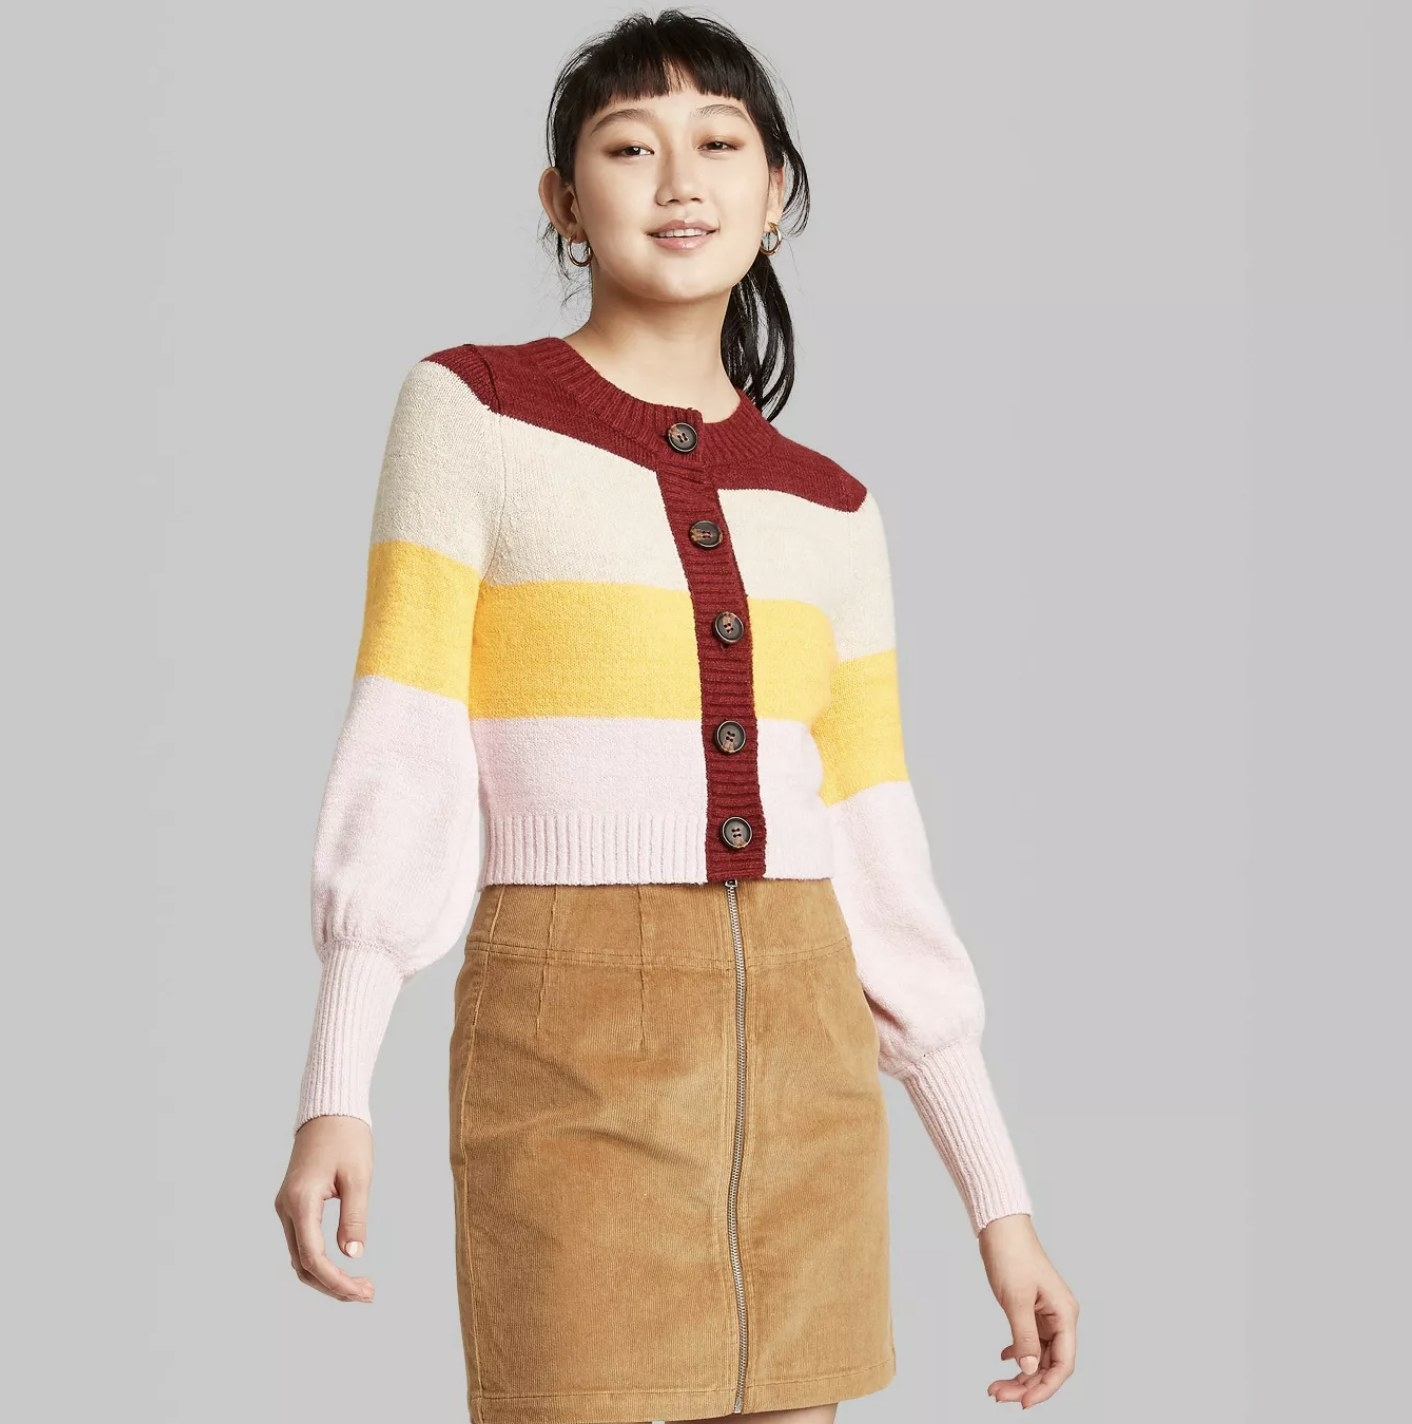 Model is wearing a striped button front cardigan with yellow, cream, red, and pink colors and puff sleeves